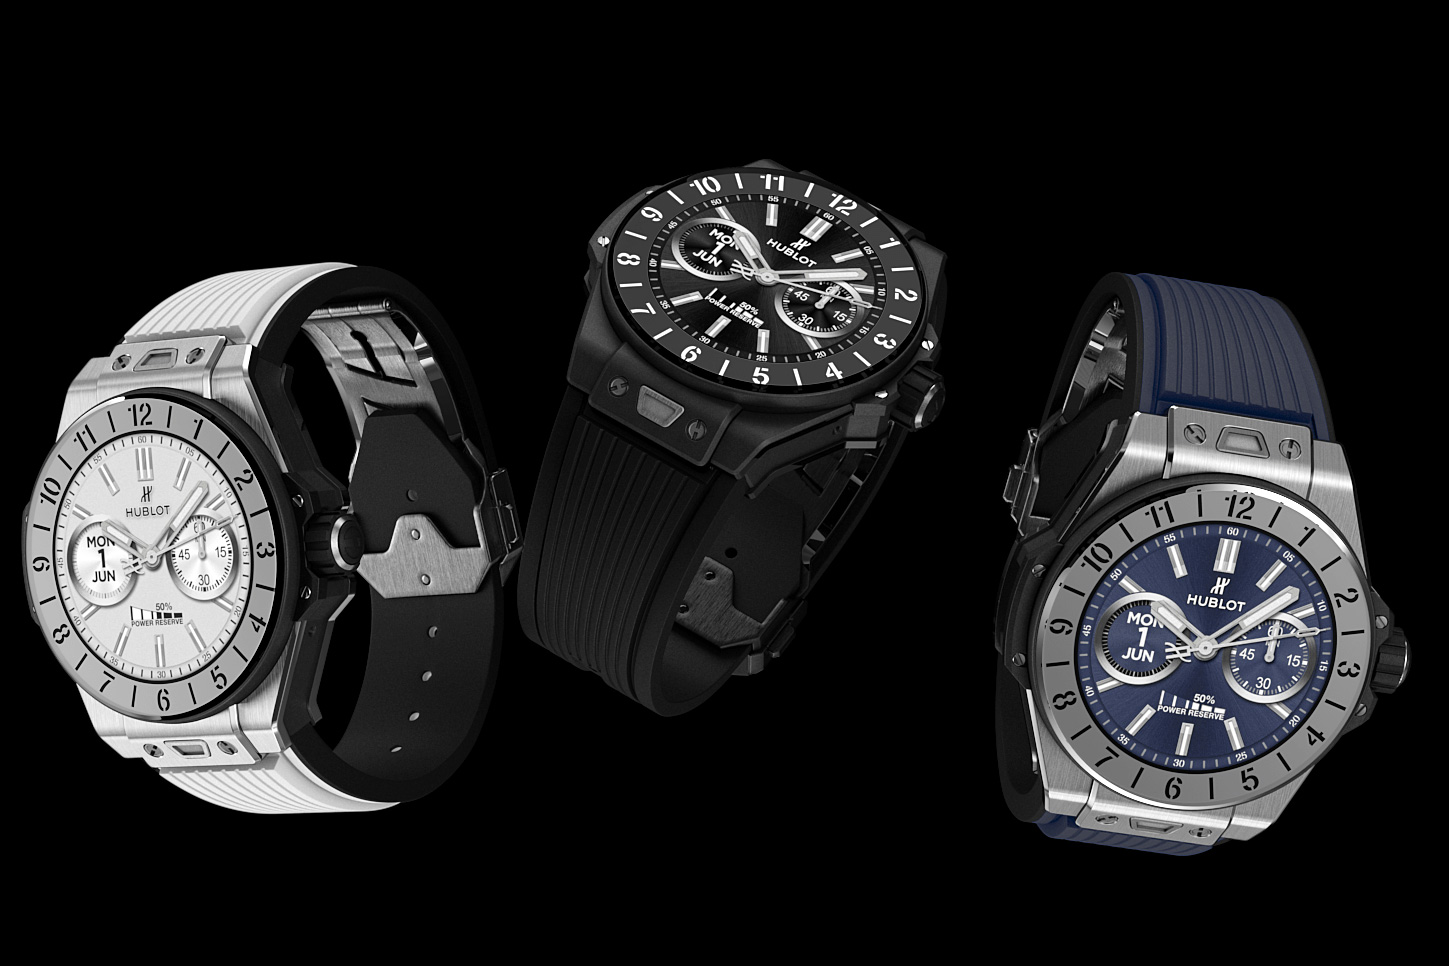 Hublot's Big Bang e Looks Rather Smart at werd.com